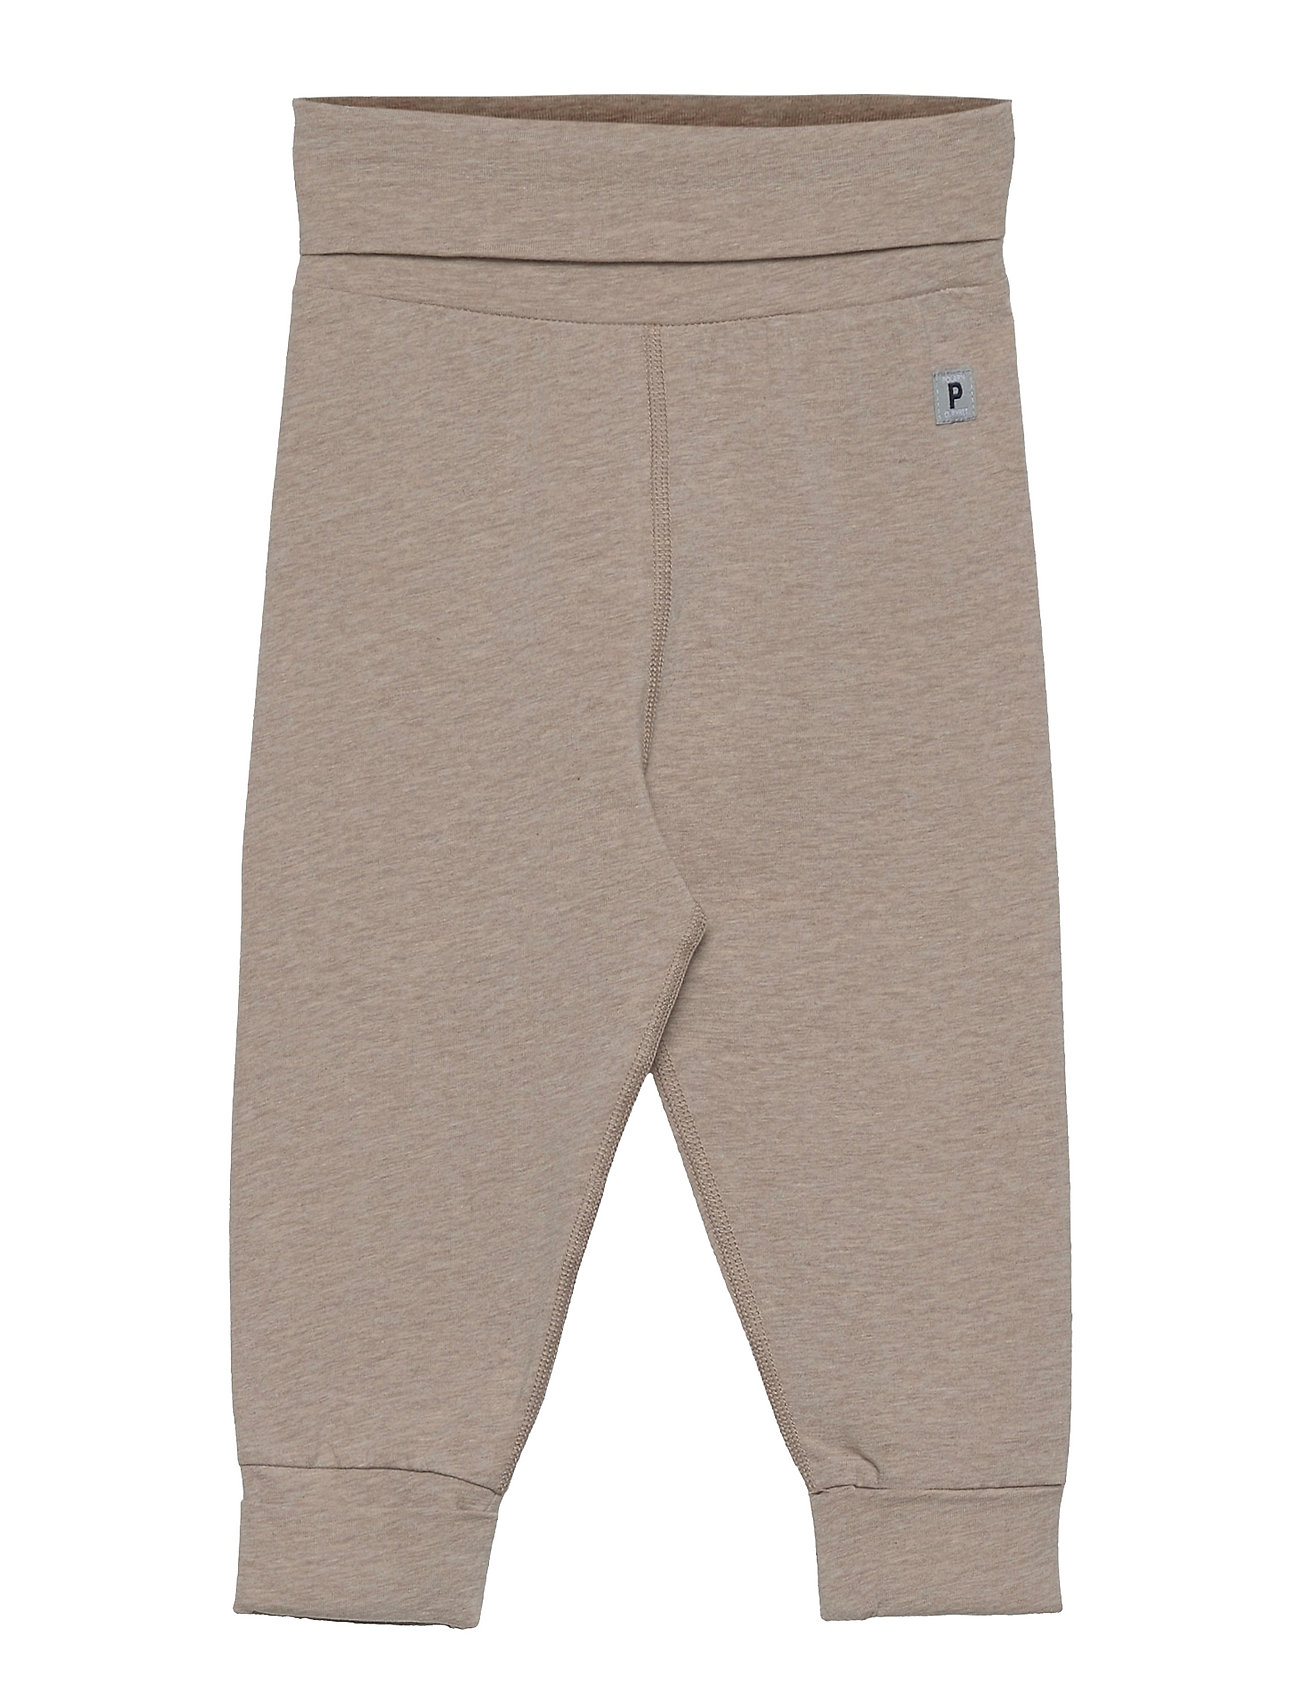 Trousers Jersey Baby Bukser Beige Polarn O. Pyret